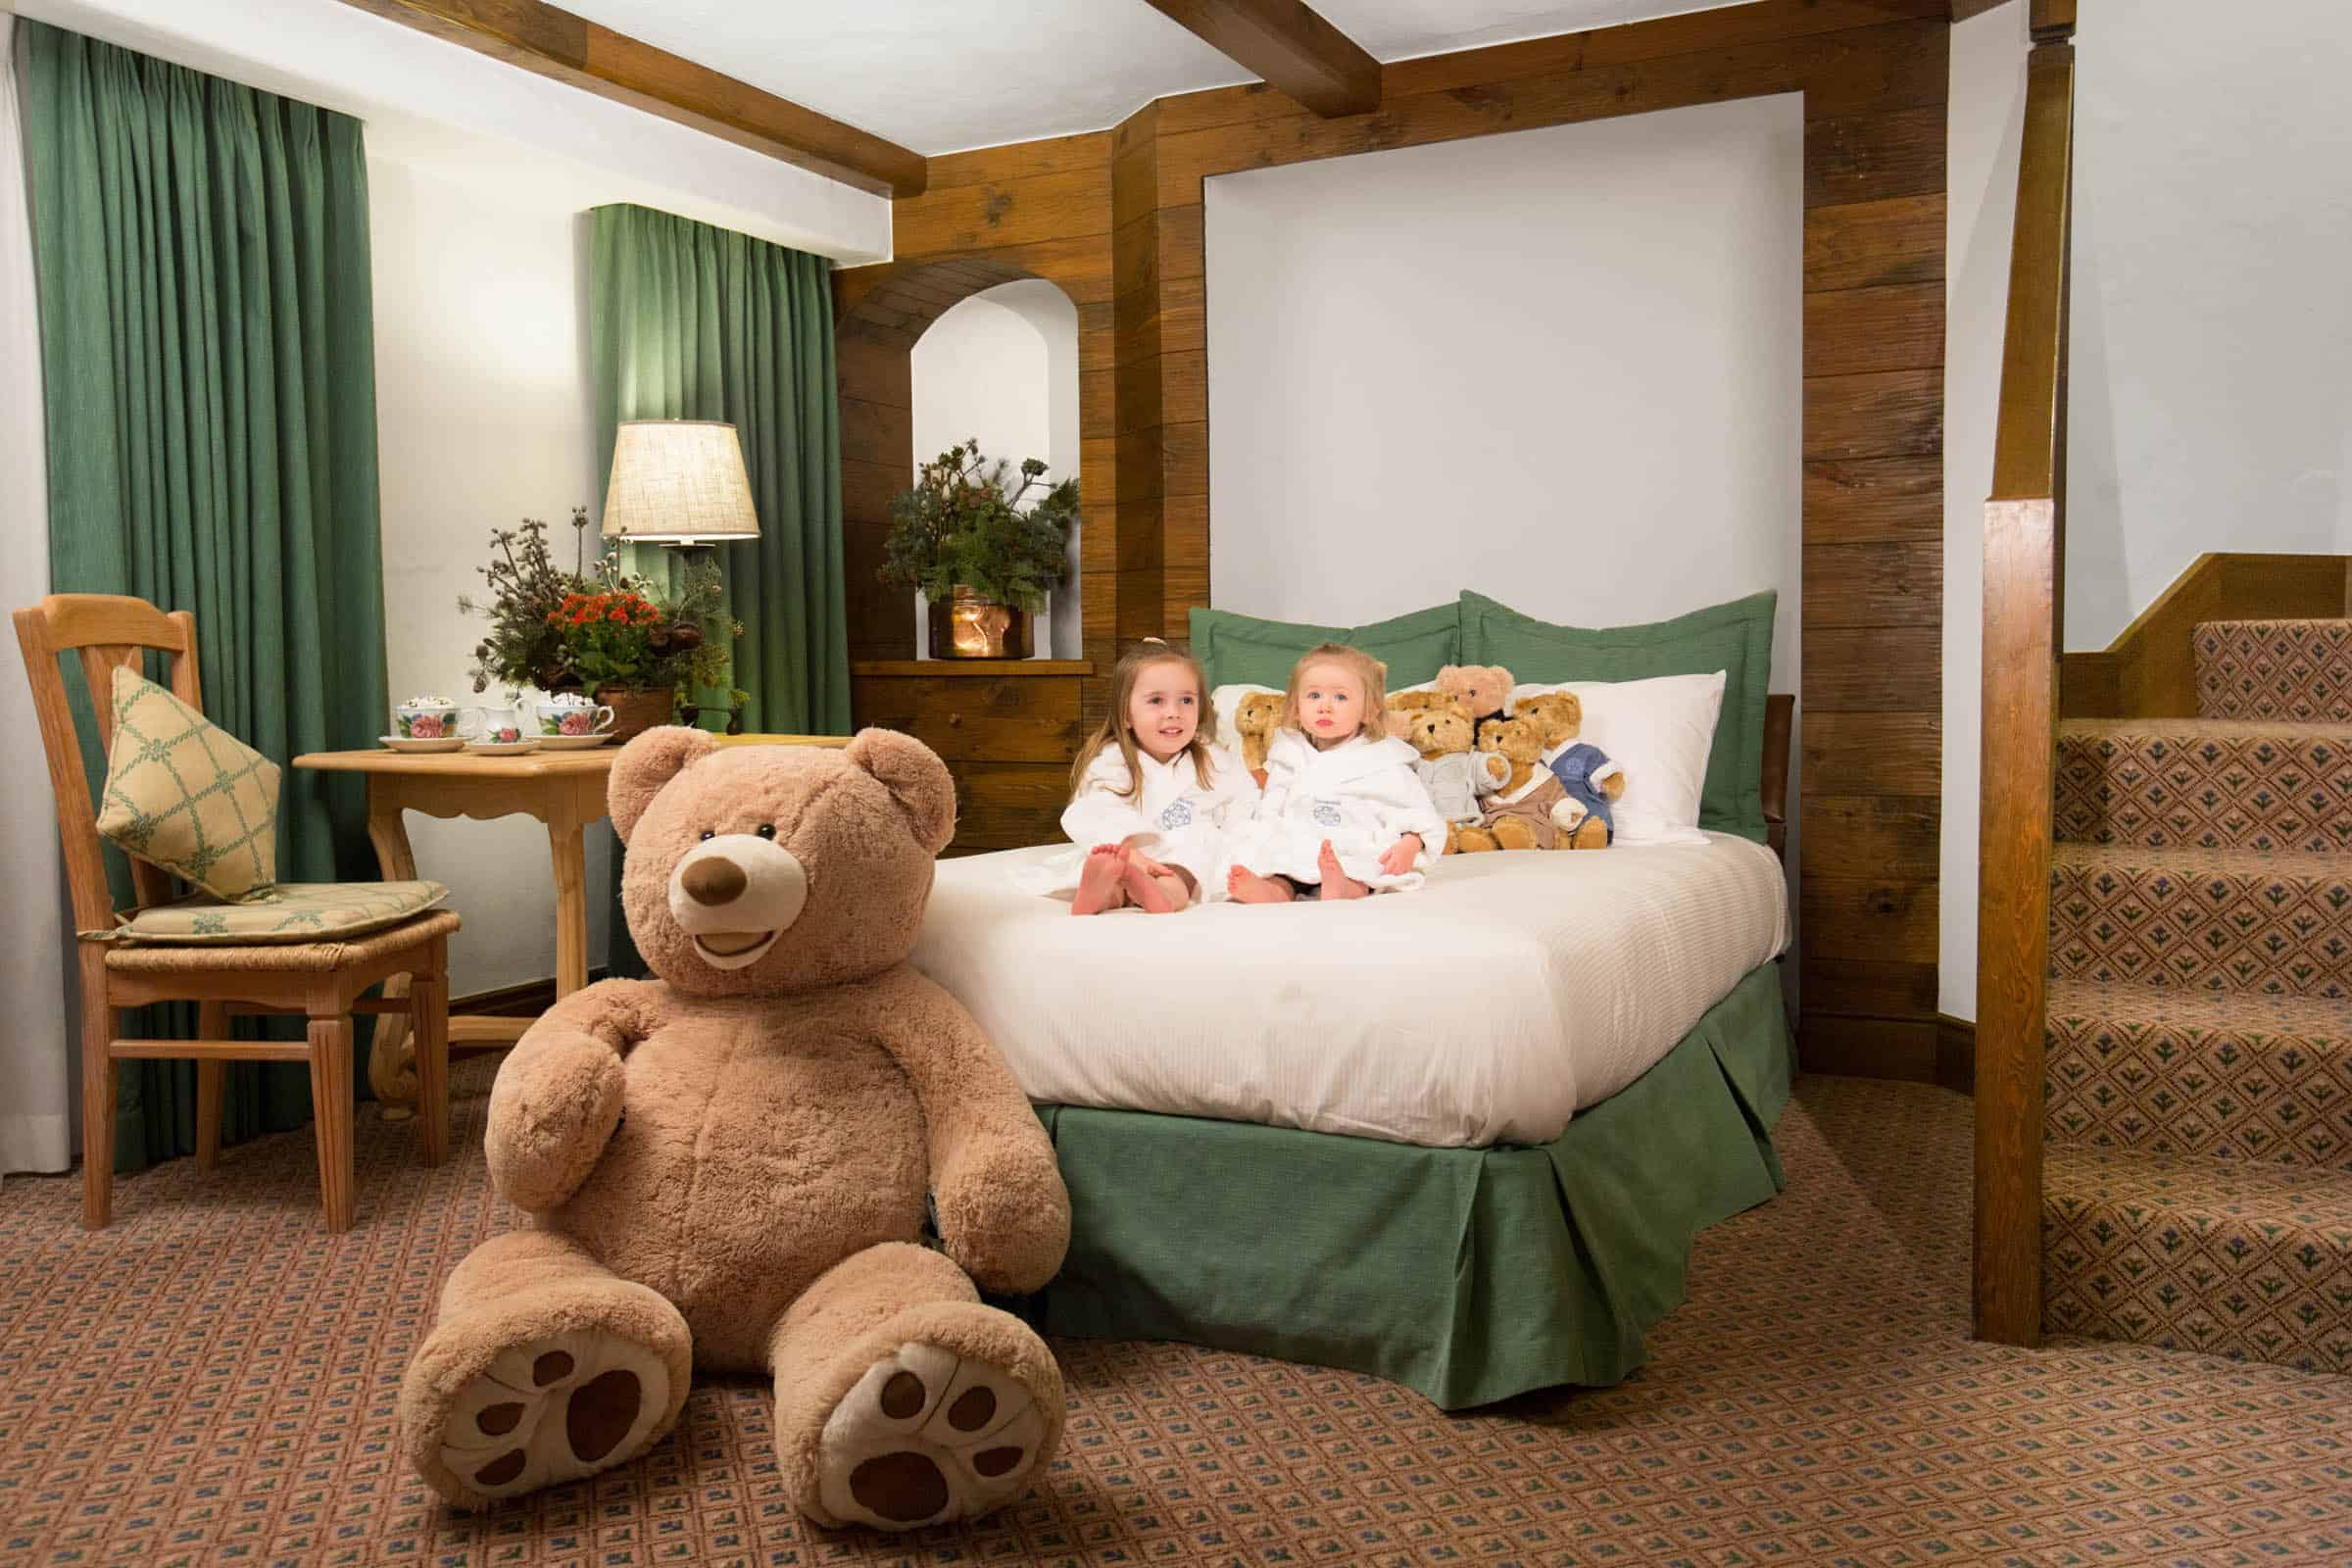 children wearing robes on bed and large teddy bear at the foot of bed